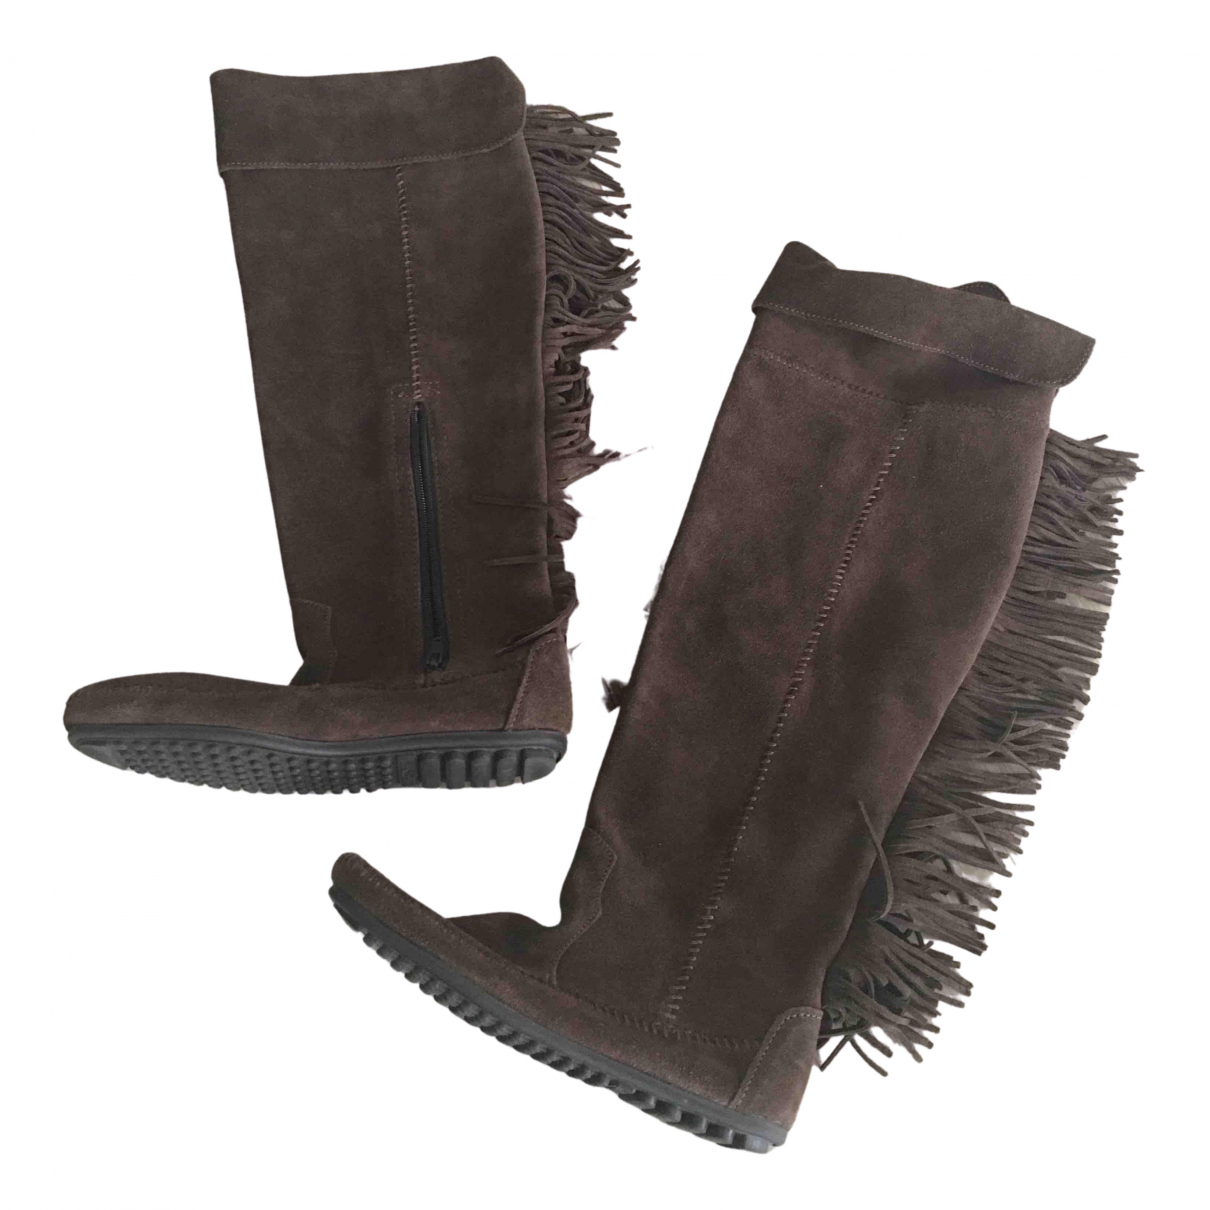 Minnetonka N Brown Suede Boots for Women 6 US